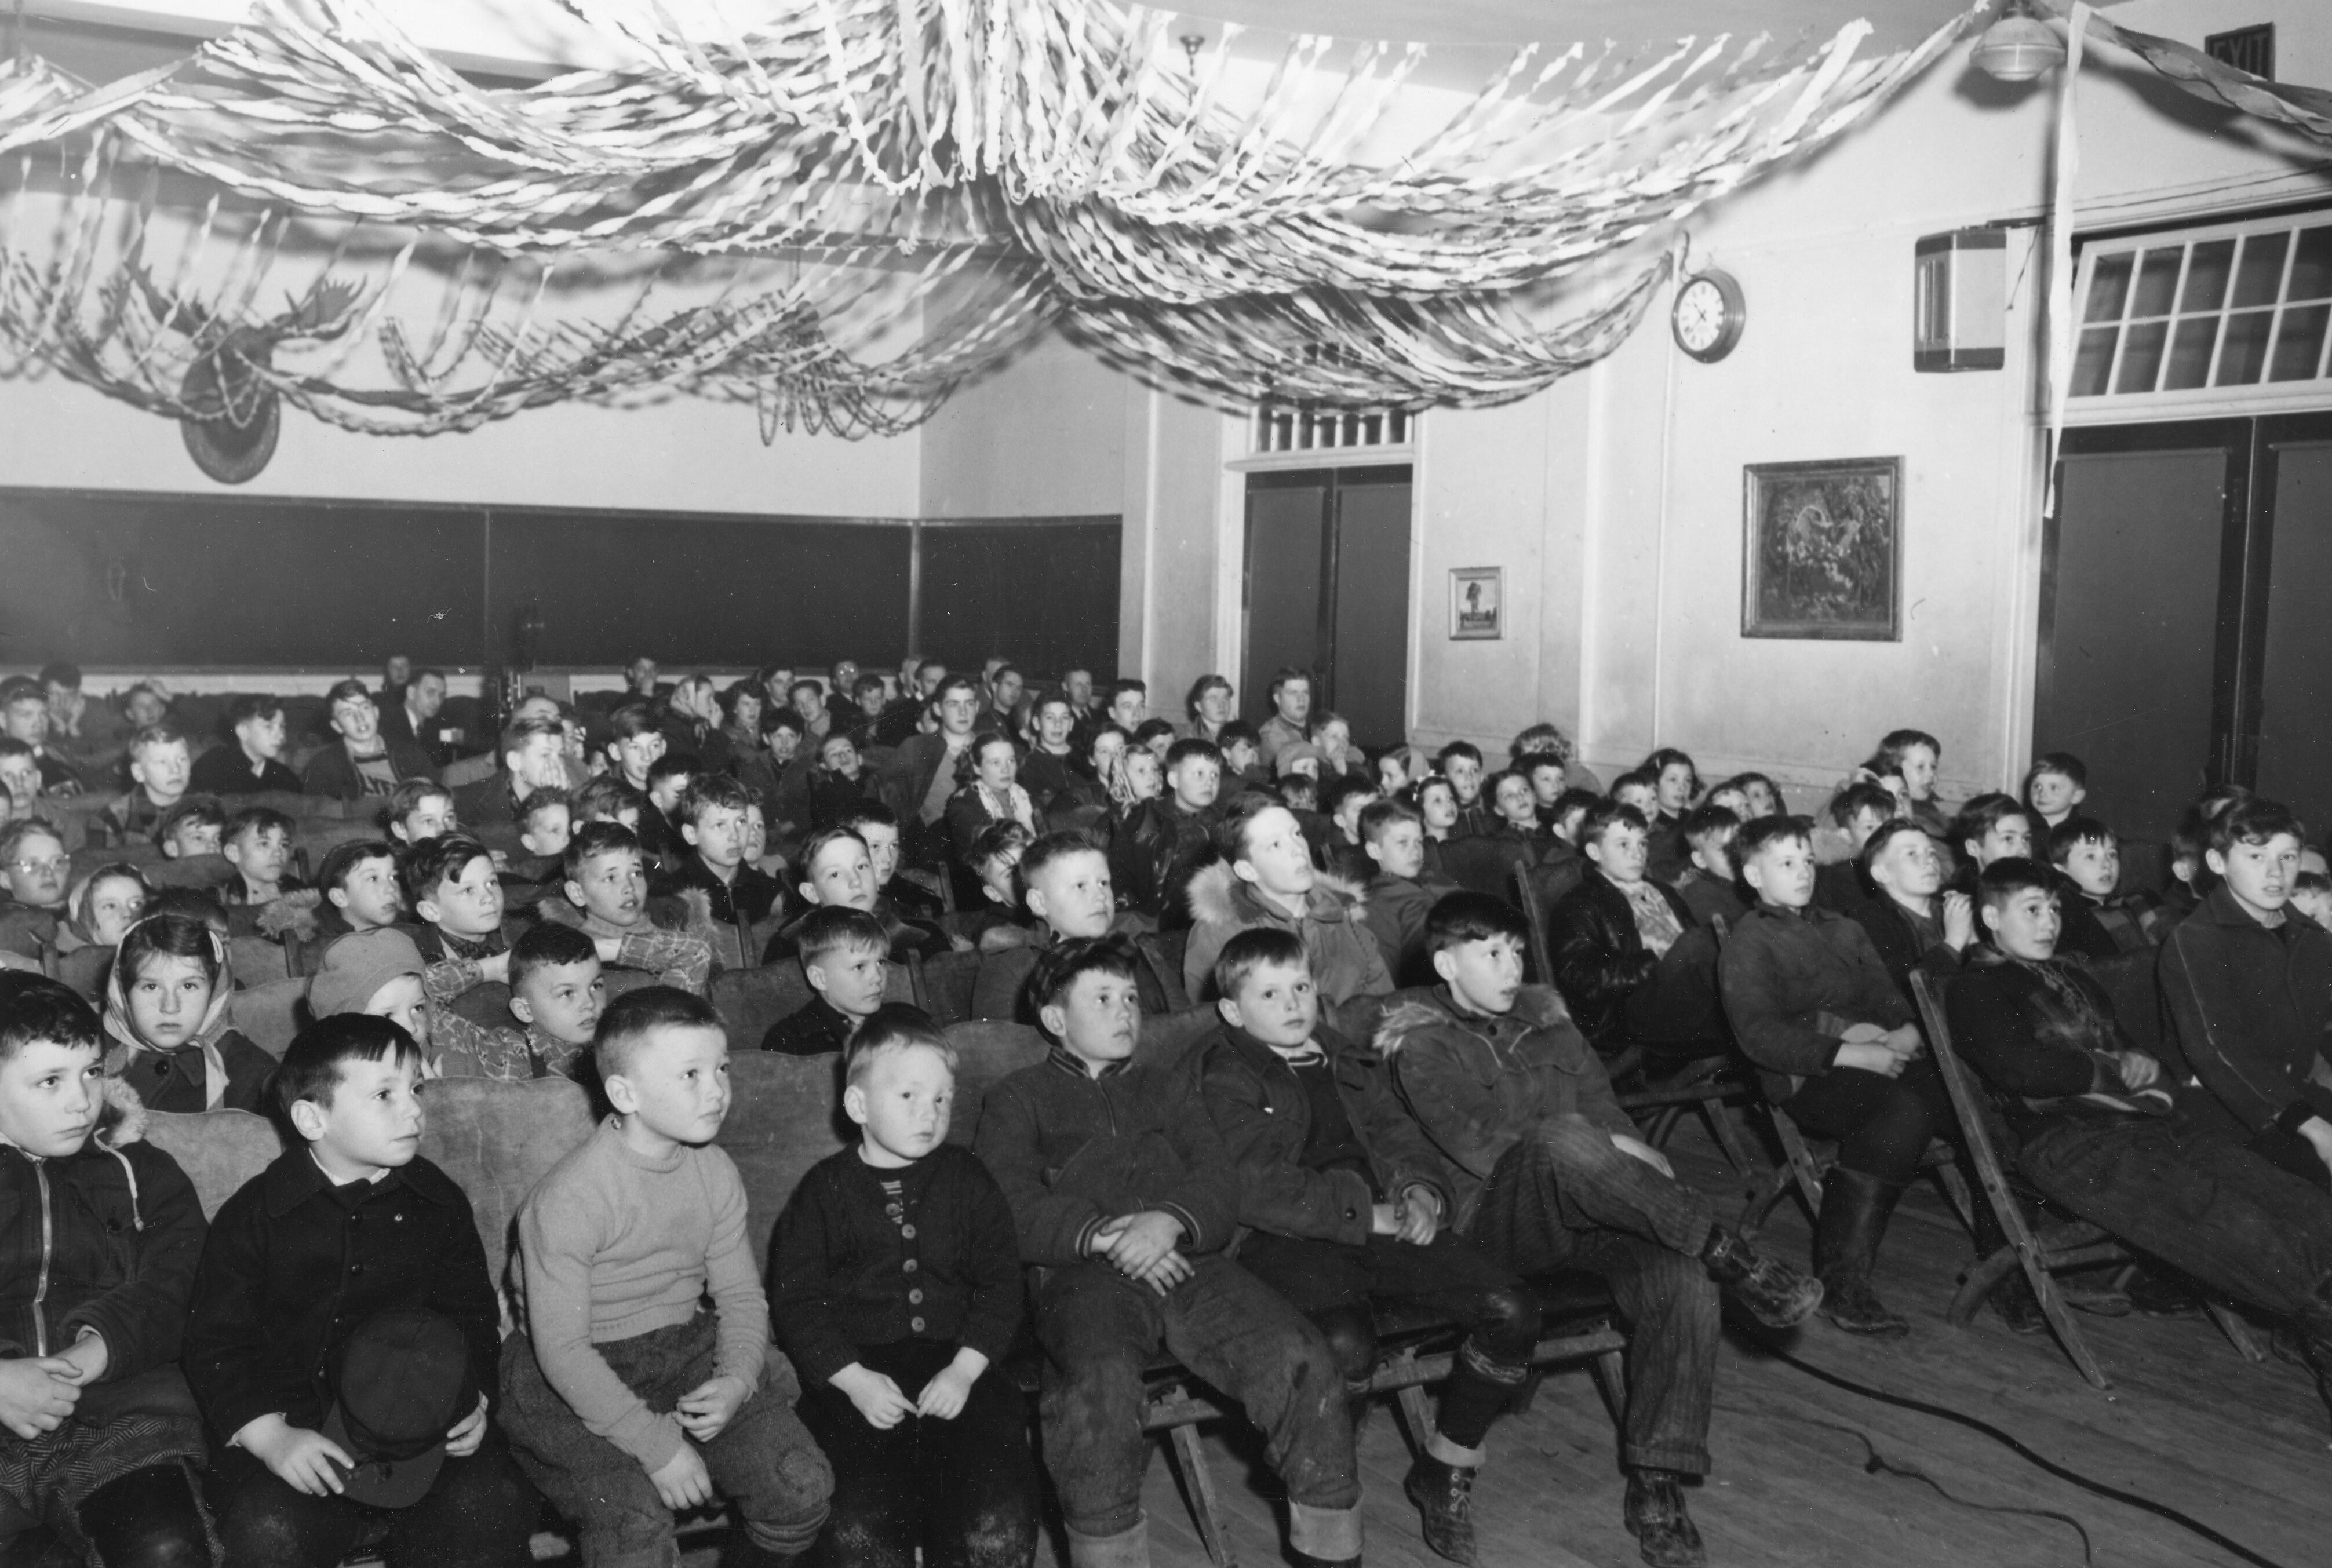 A black and white photograph of a room with dozens of small children sitting in rows on folding chairs, all looking at something off-camera. Streamers are hanging, as if draped, on the ceiling.